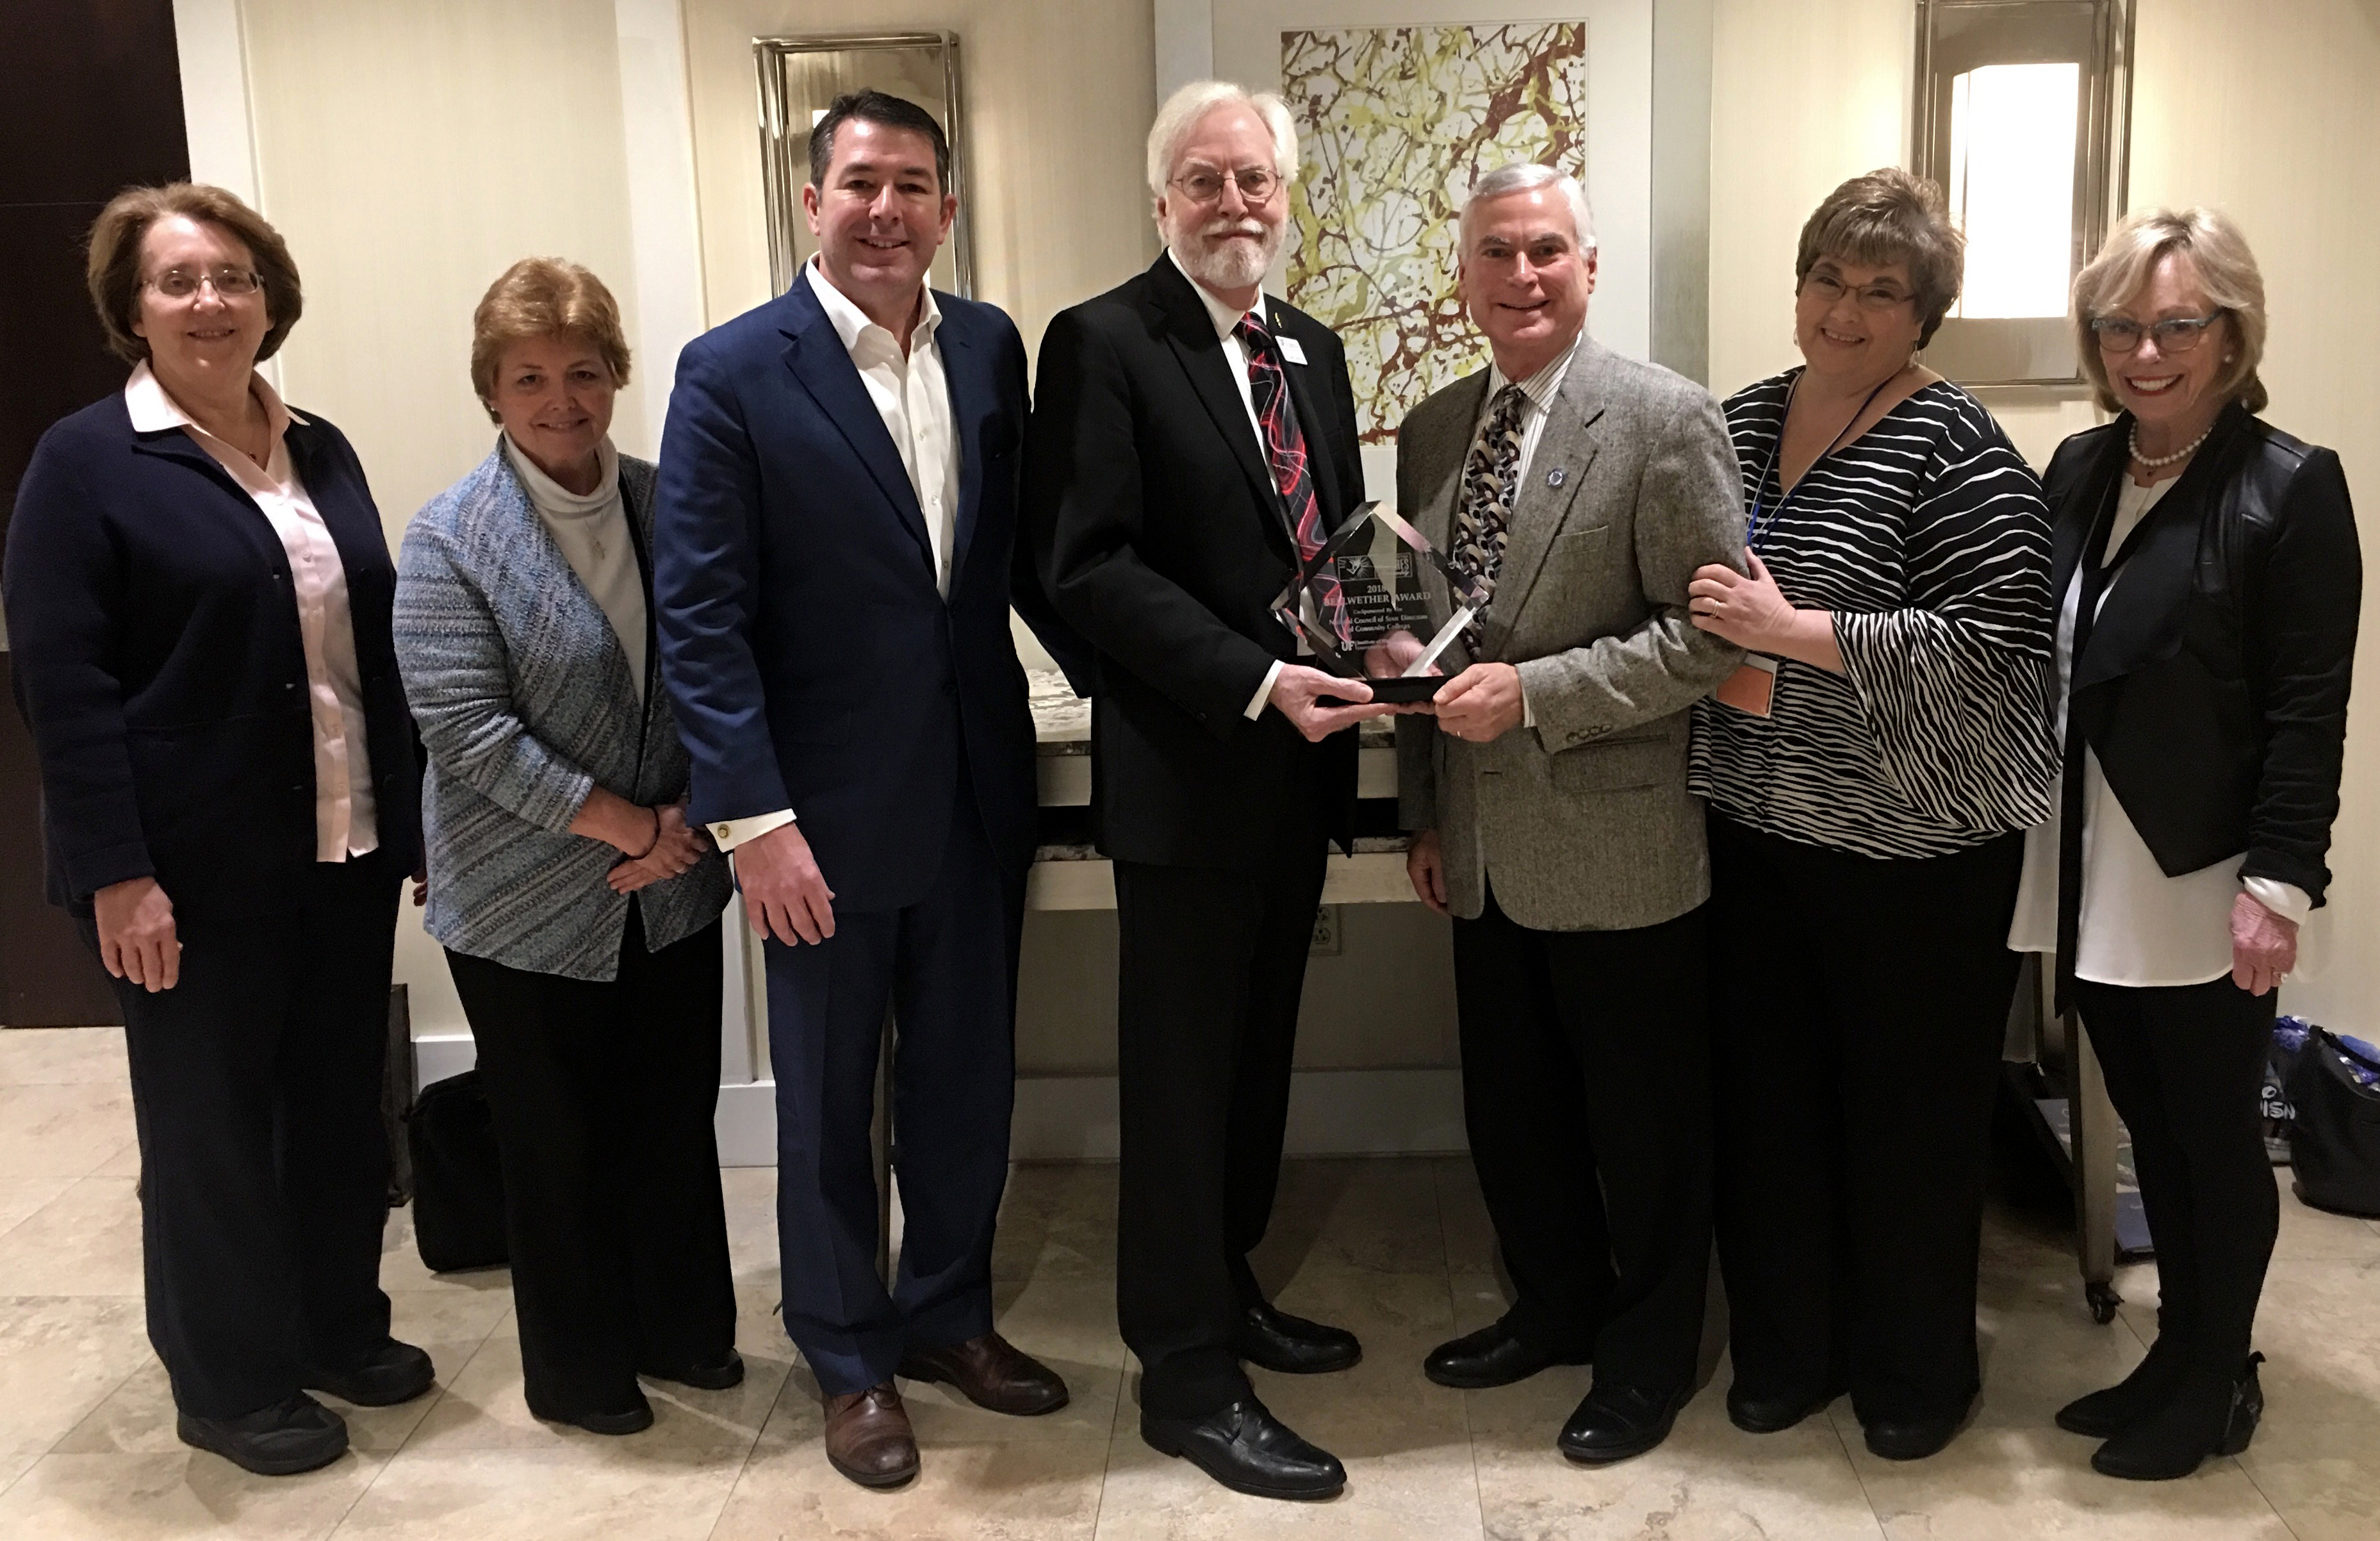 JCC received the 2018 Bellwether Award in the planning, governance, and adminstration category.